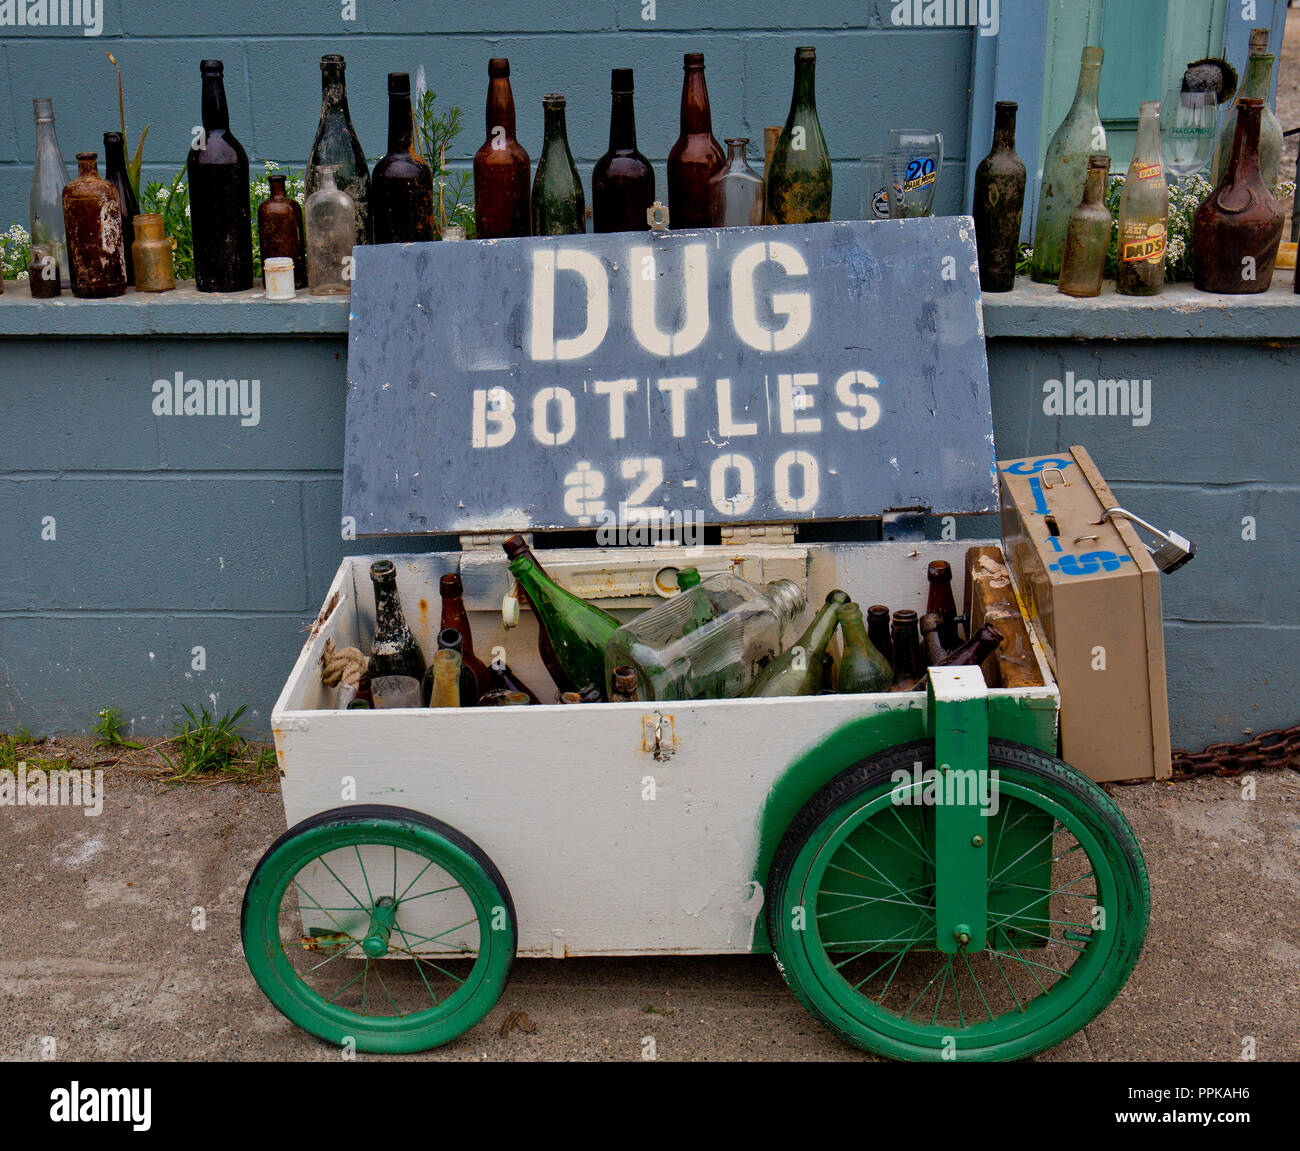 recycling bottles for profit - Stock Image